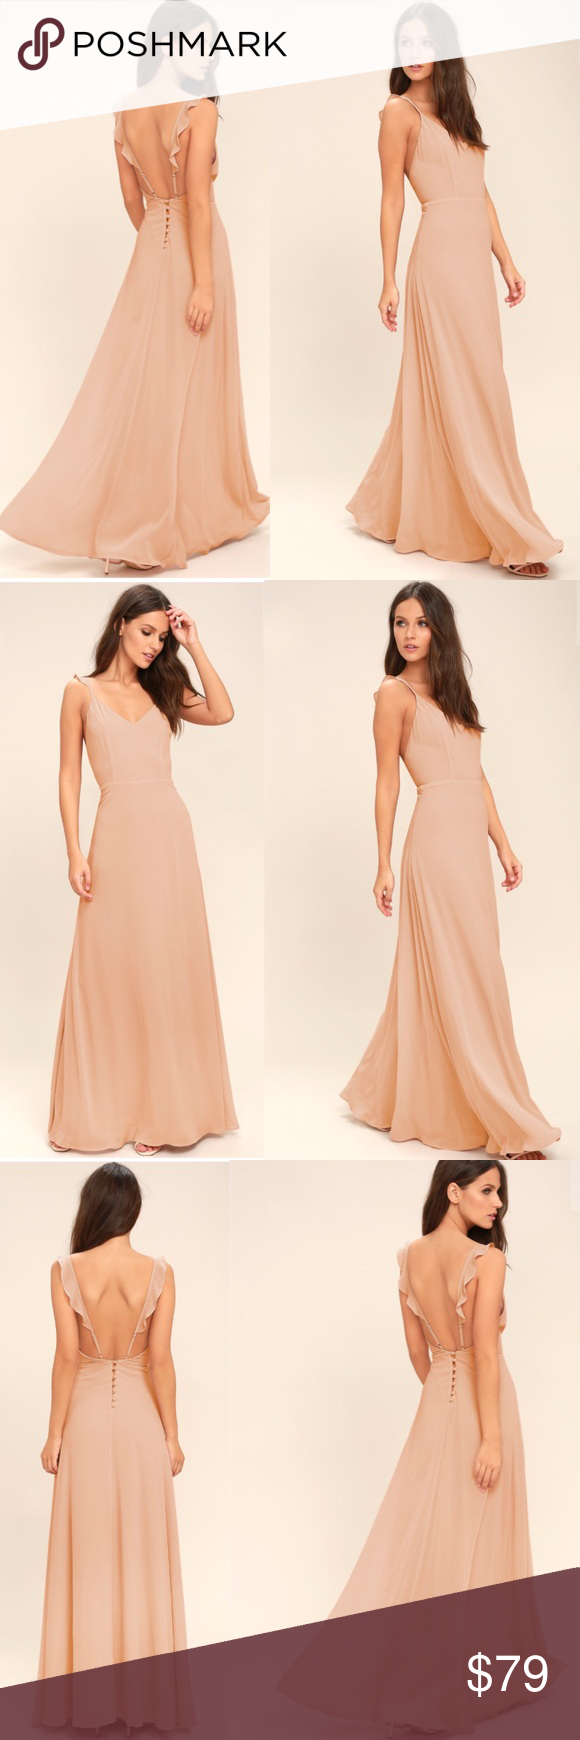 d3ab361061f8 Lulu's Meteoric Rise Blush Maxi Dress Lulus Exclusive! Your allure will be  at an all-time high when you slip into the Meteoric Rise Blush Maxi Dress!